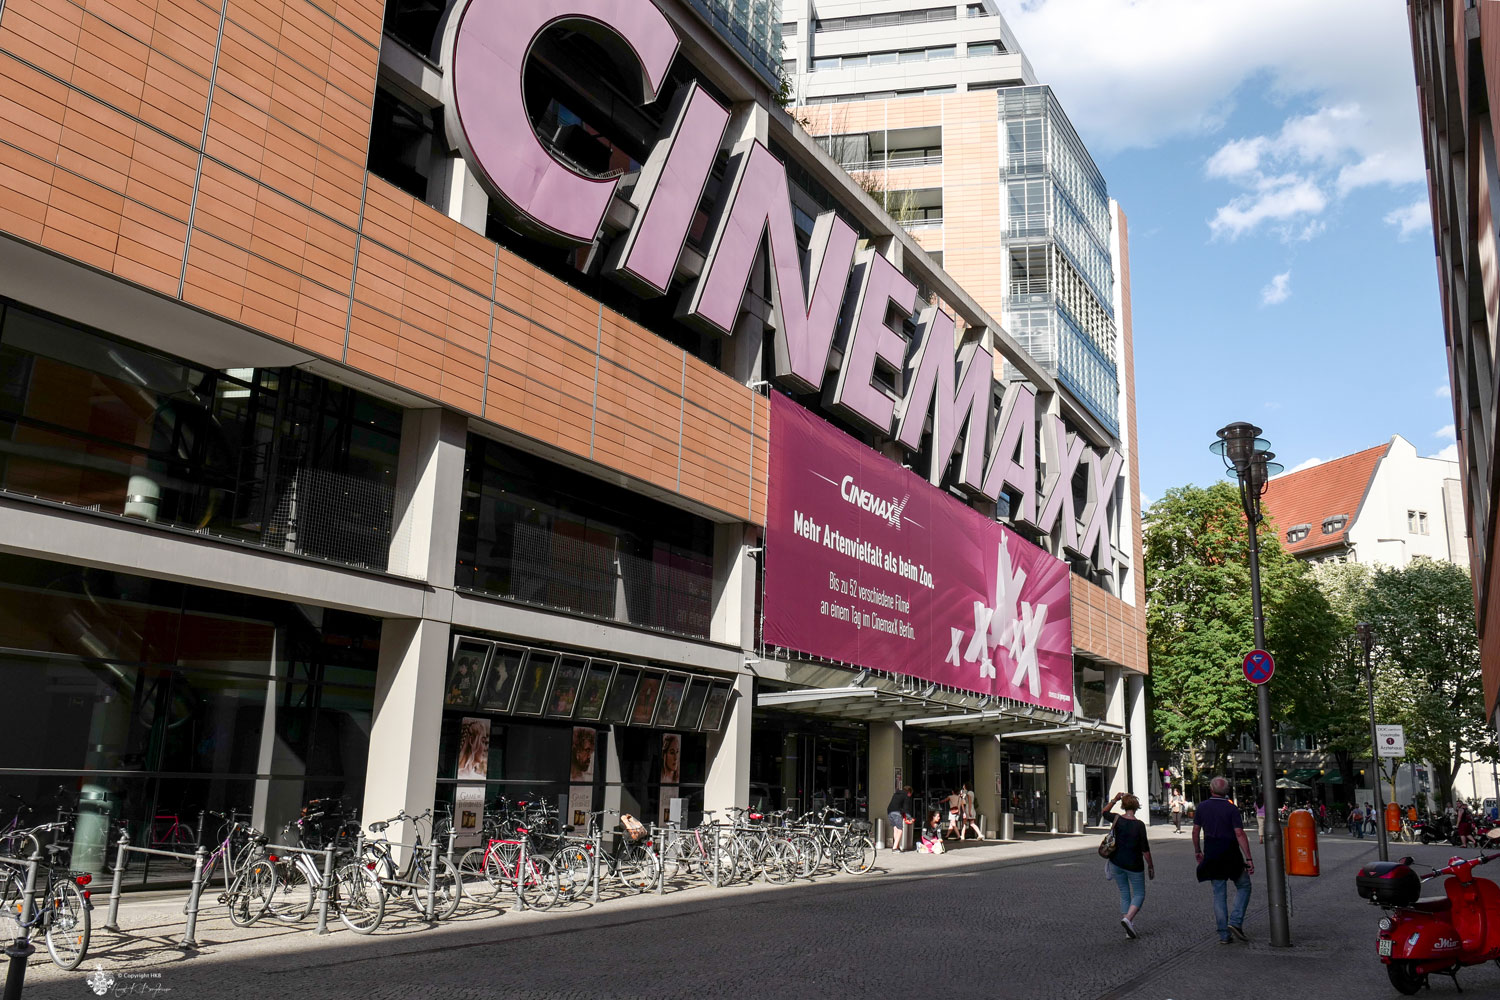 Cinemaxx am Potsdamer Platz